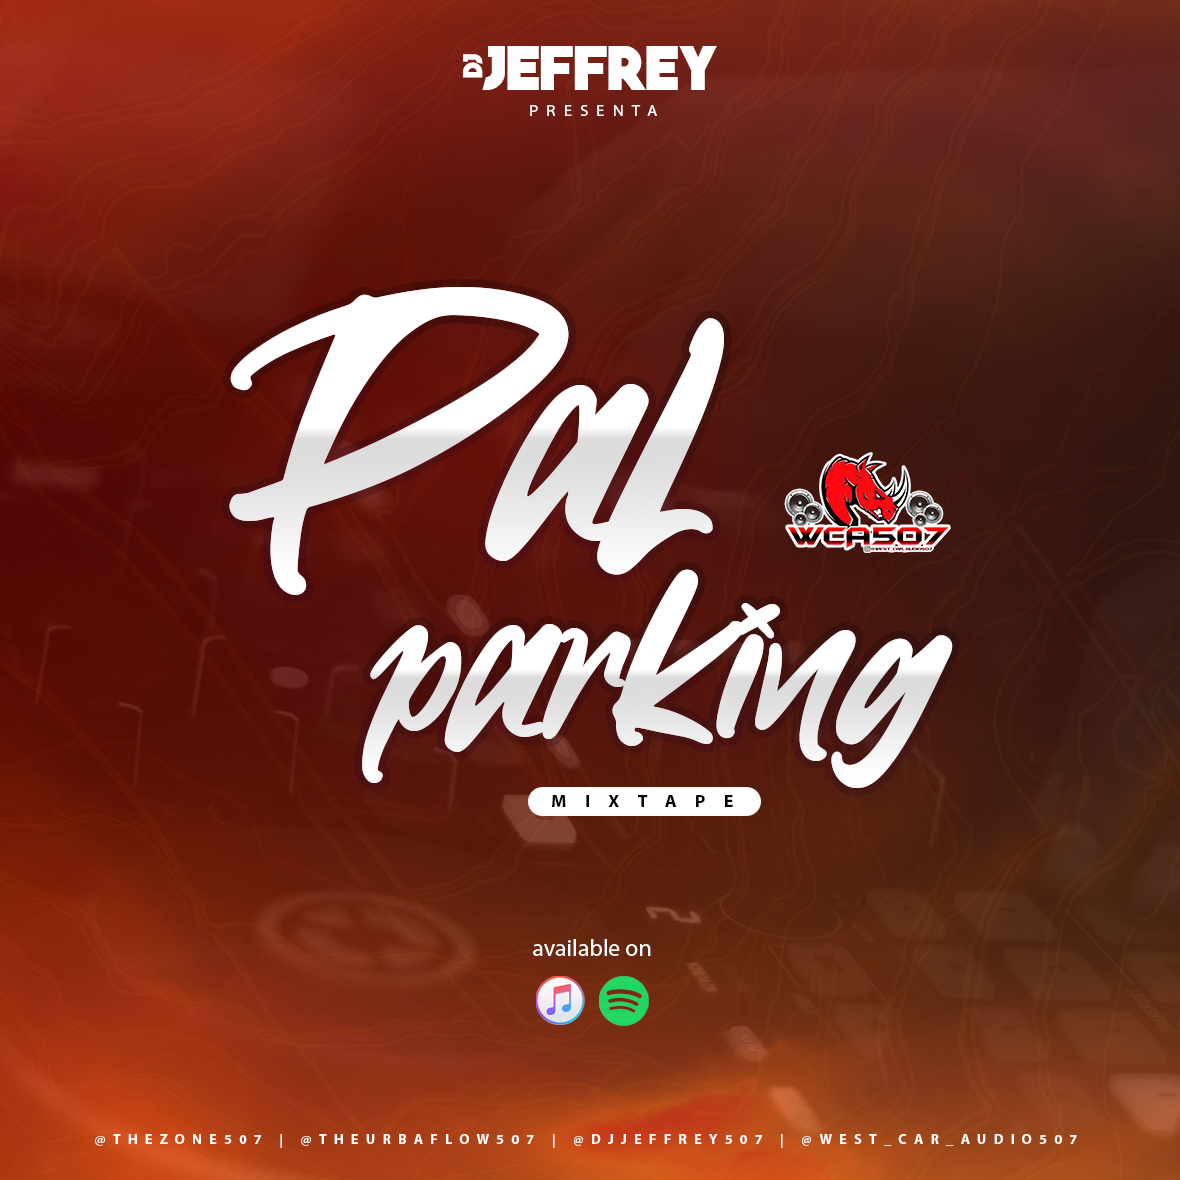 Pal Parking Mixtape By Dj Jeffrey (djsthezone507)